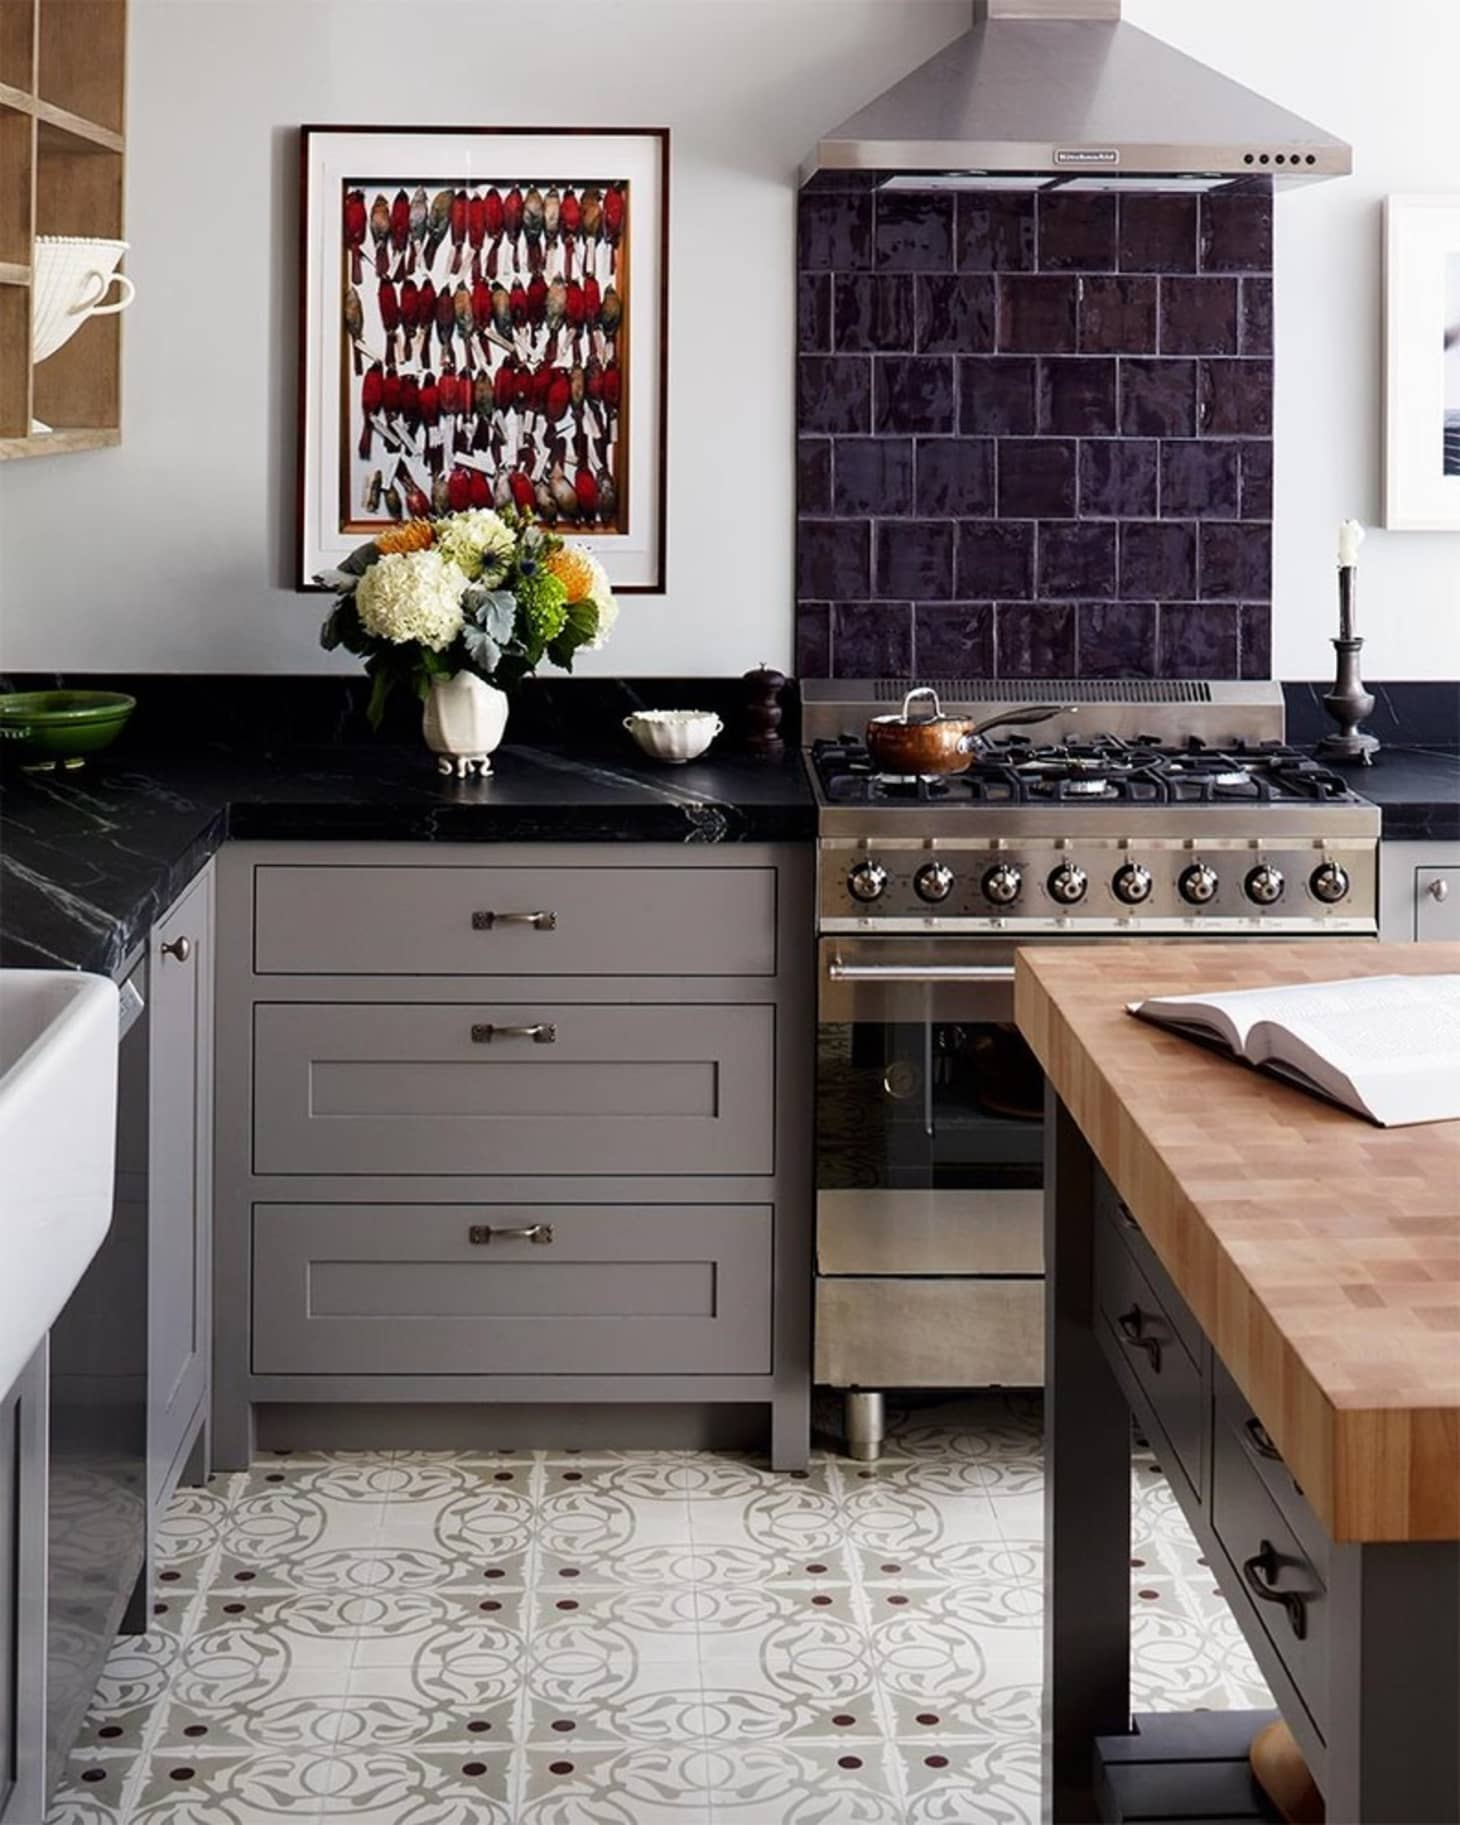 Soapstone Countertops: Pros And Cons To Consider